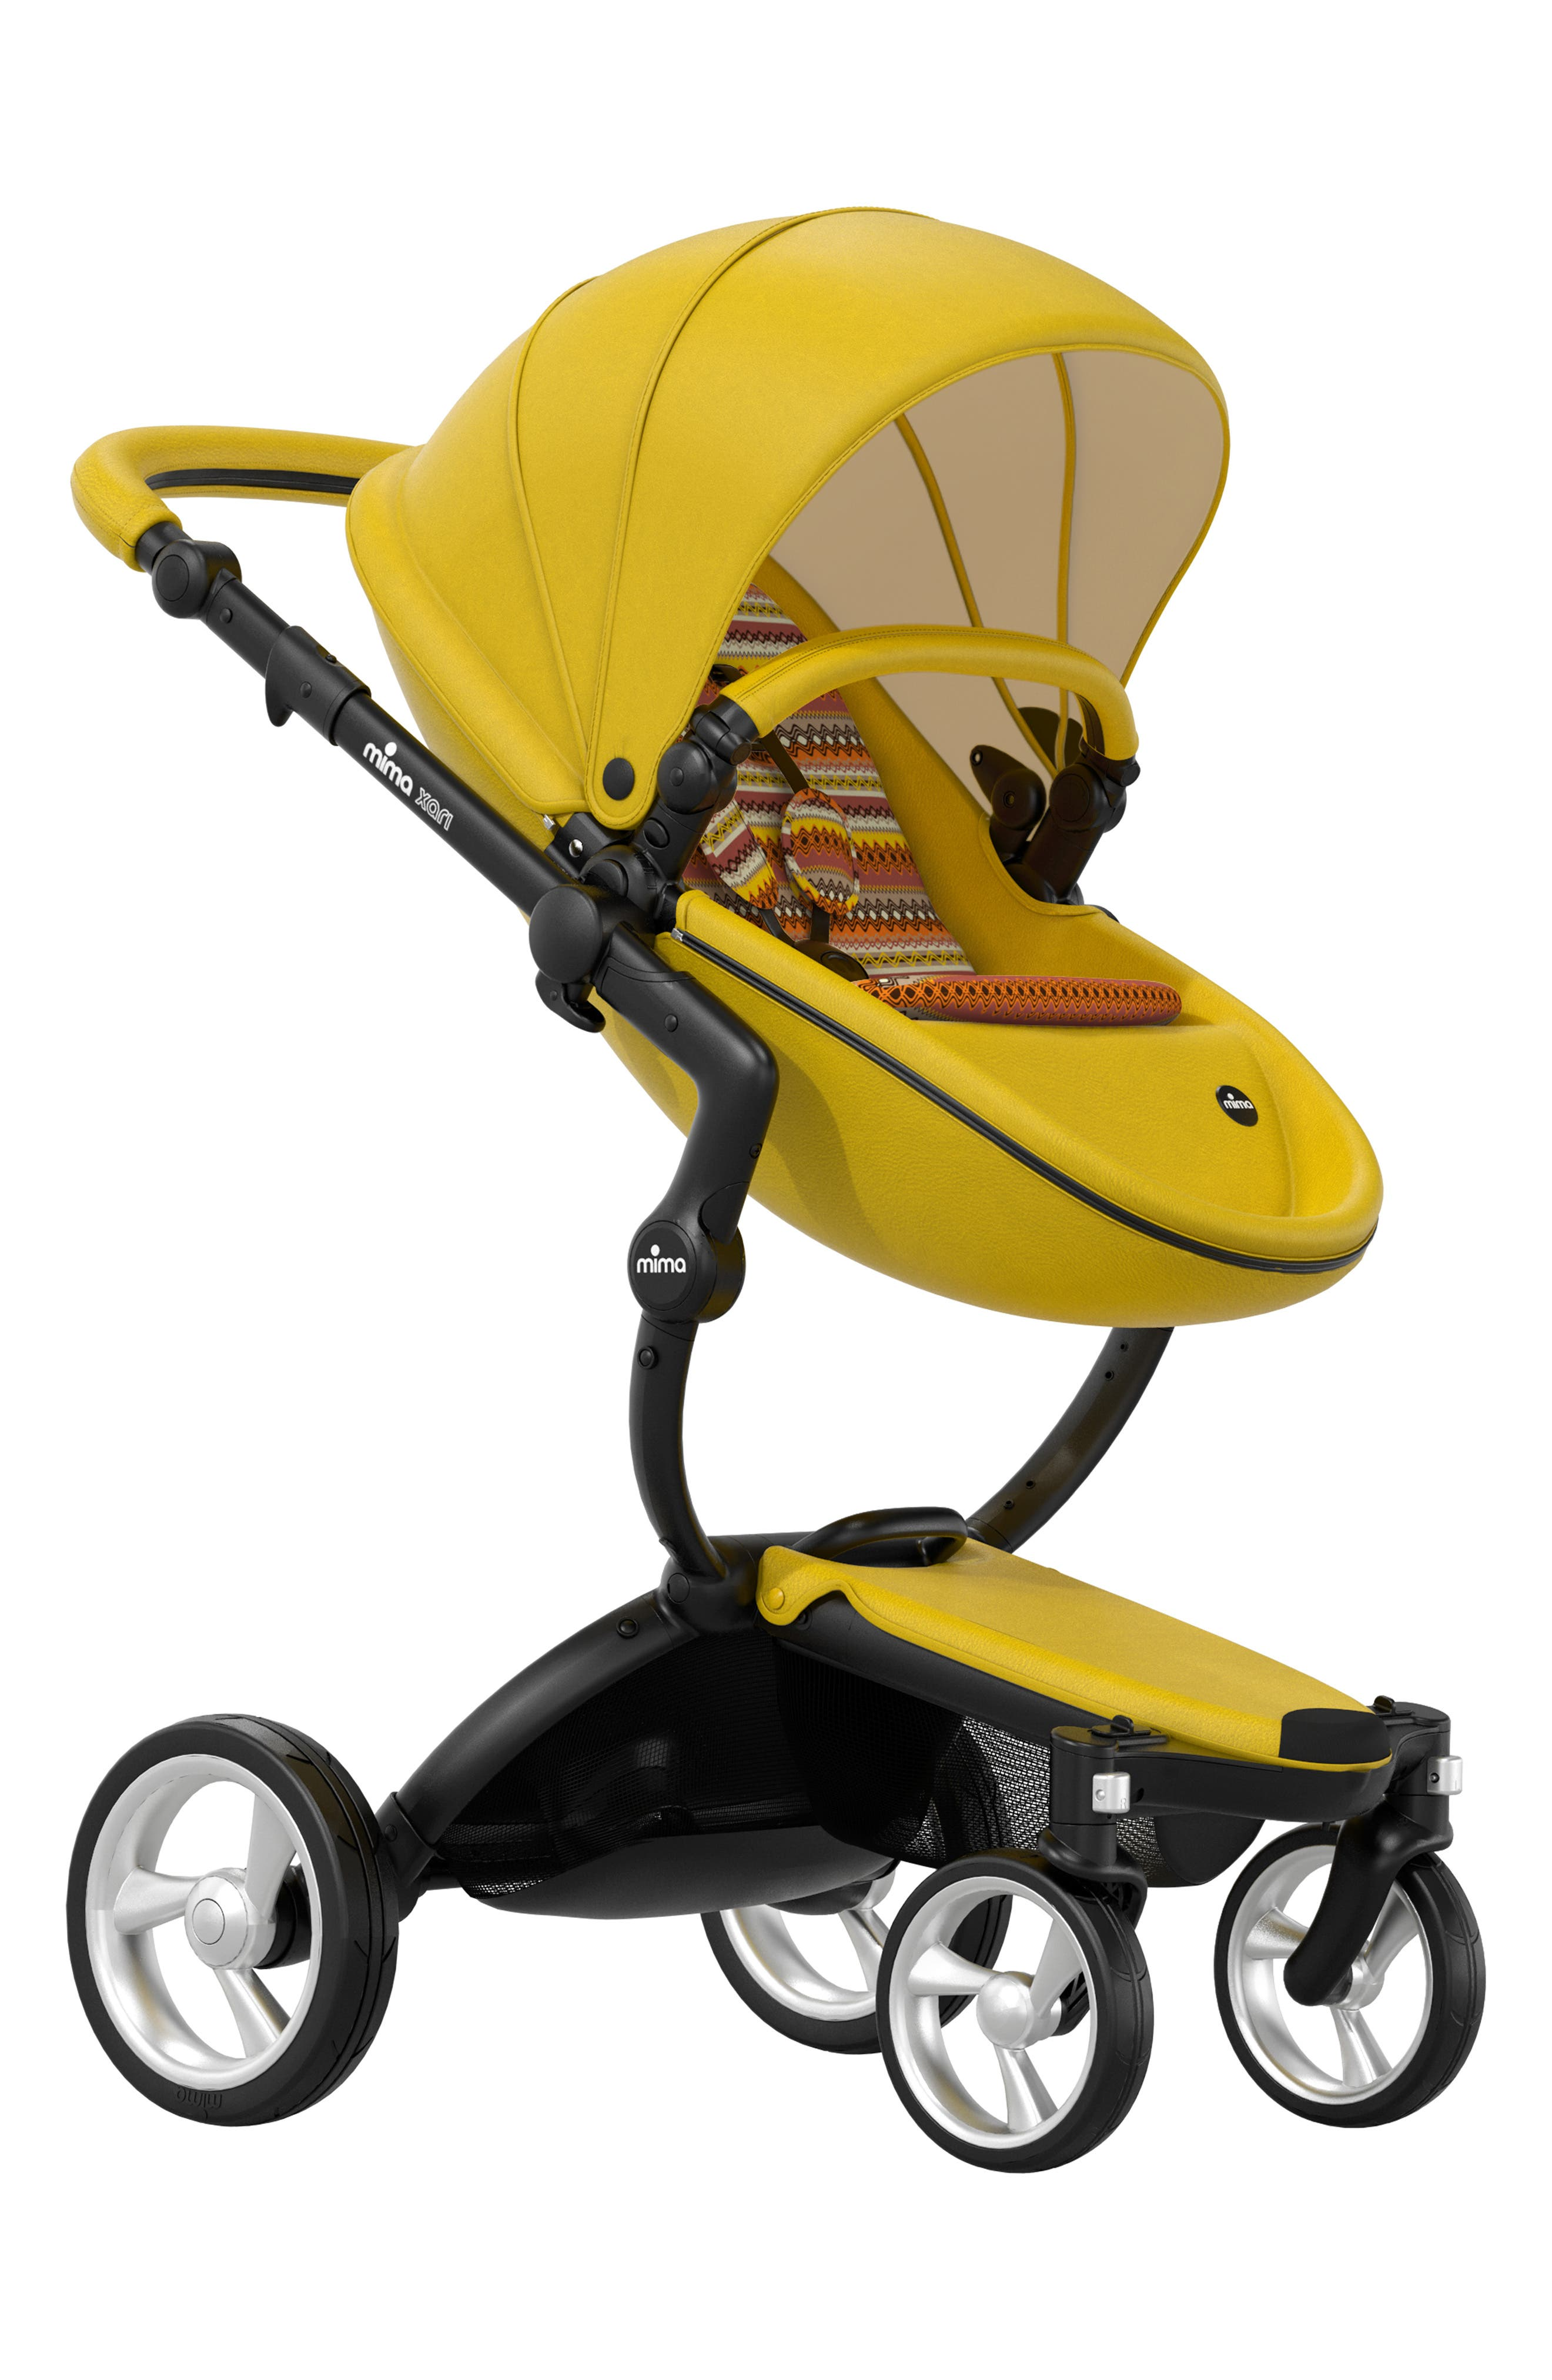 Xari Special Edition Chassis Stroller with Seat, Carrycot & Accessories,                             Main thumbnail 1, color,                             SPECIAL EDITION YELLOW